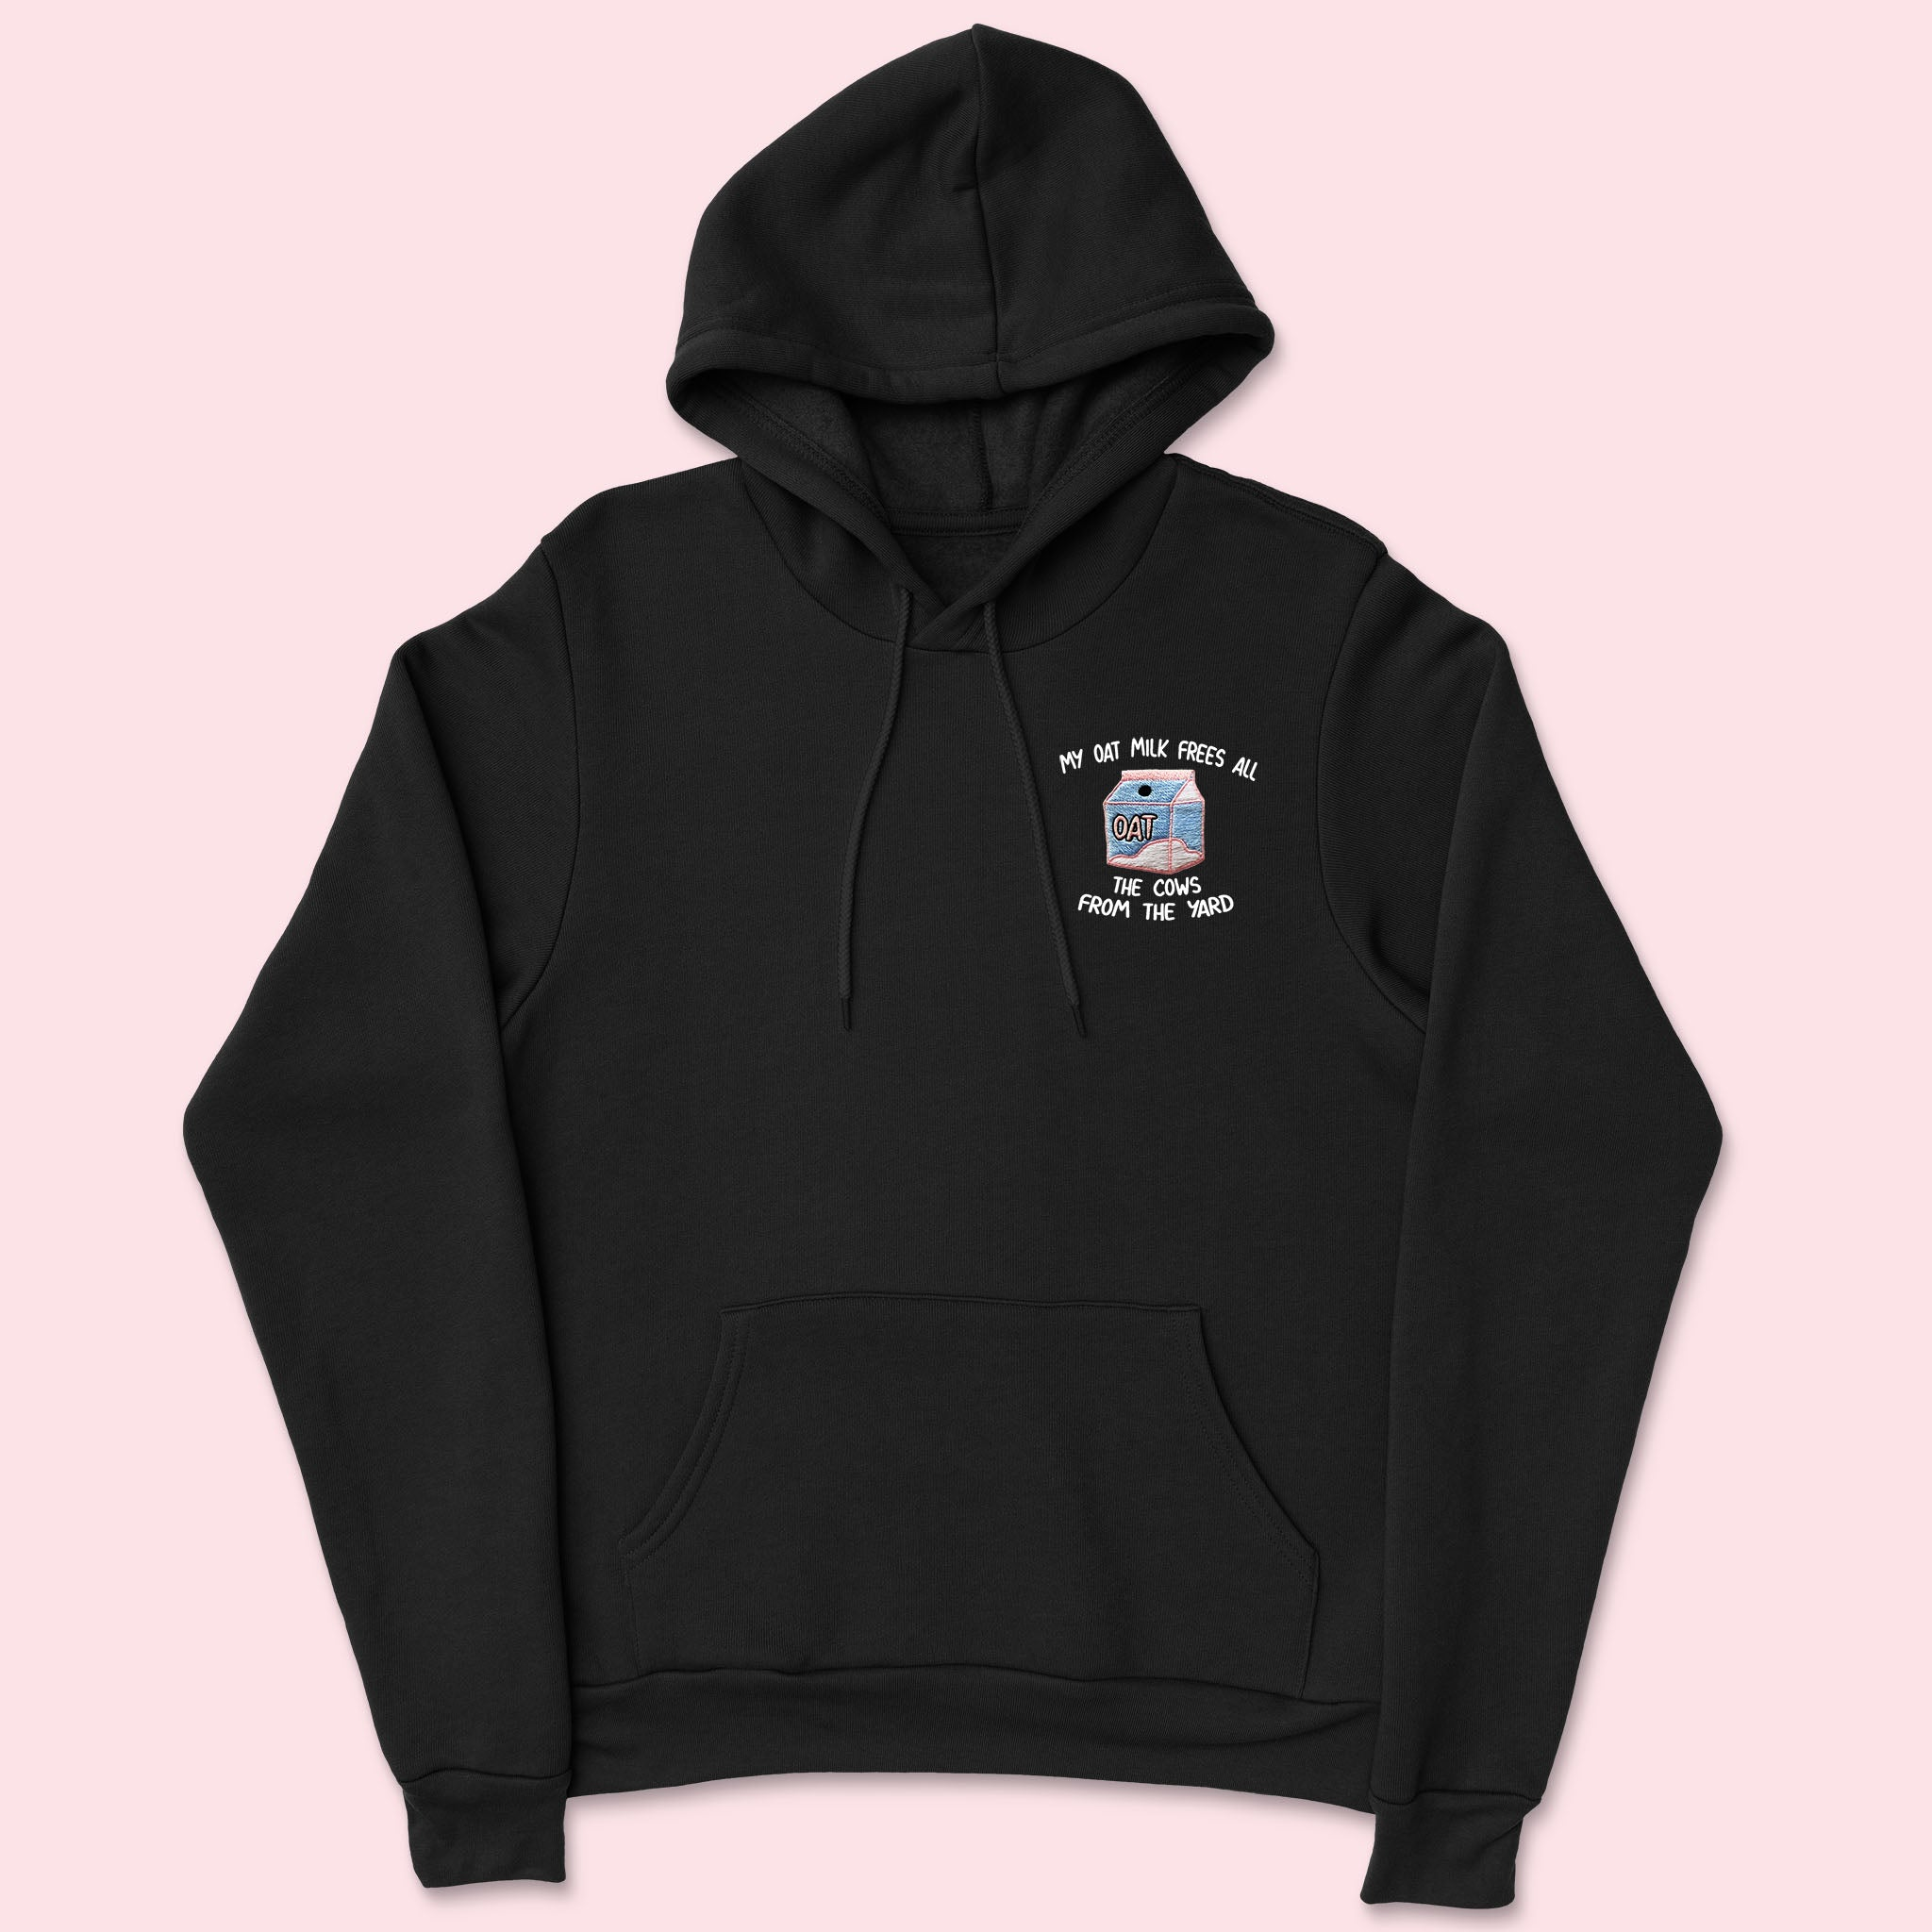 My Oat Milk- Embroidered Black Unisex Hoodie